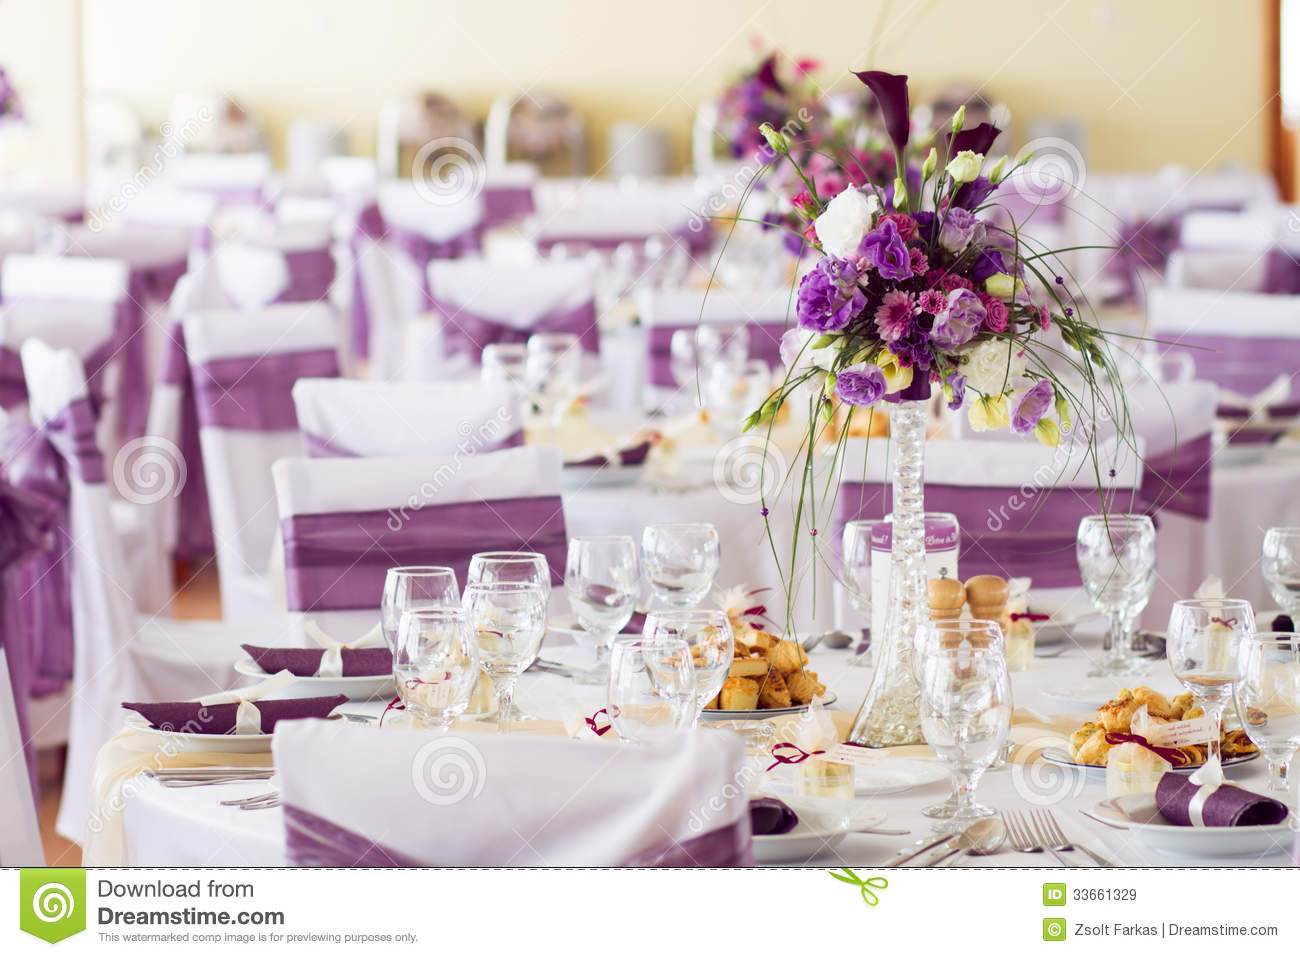 Wedding Table Decoration With Flowers. Stock Image - Image of dine ...